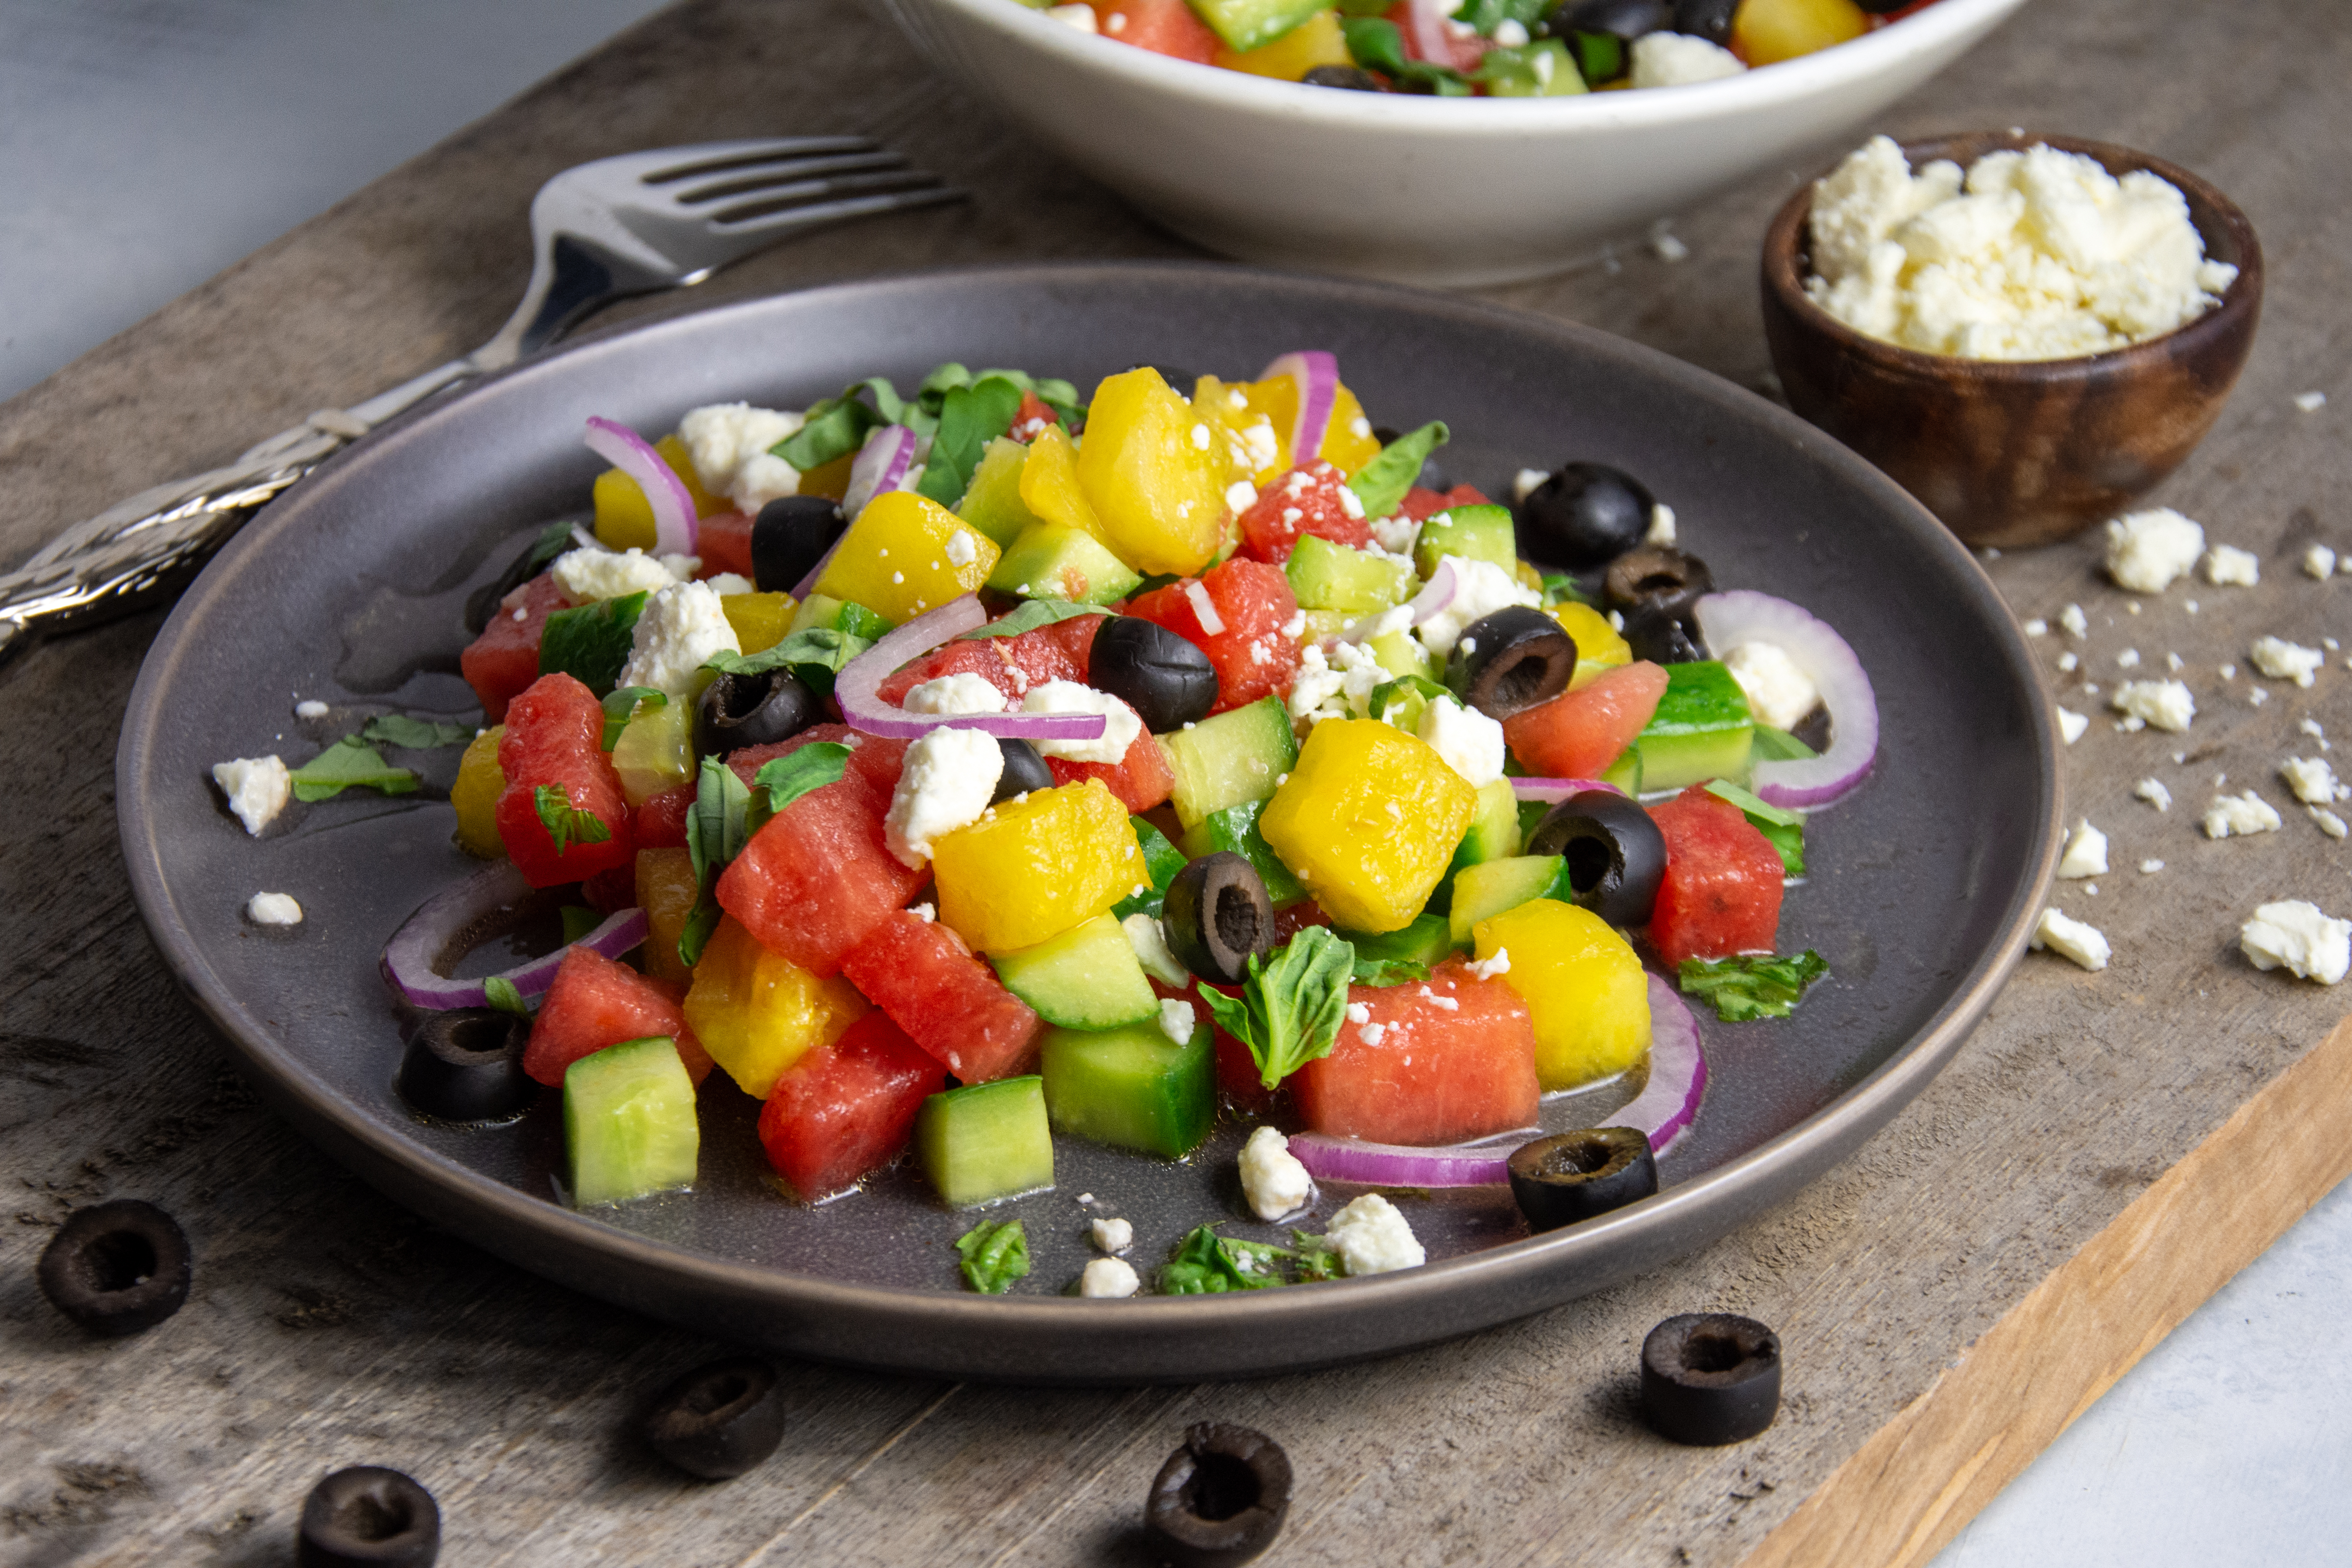 Watermelon Salad That Will Make Your Mouth Water